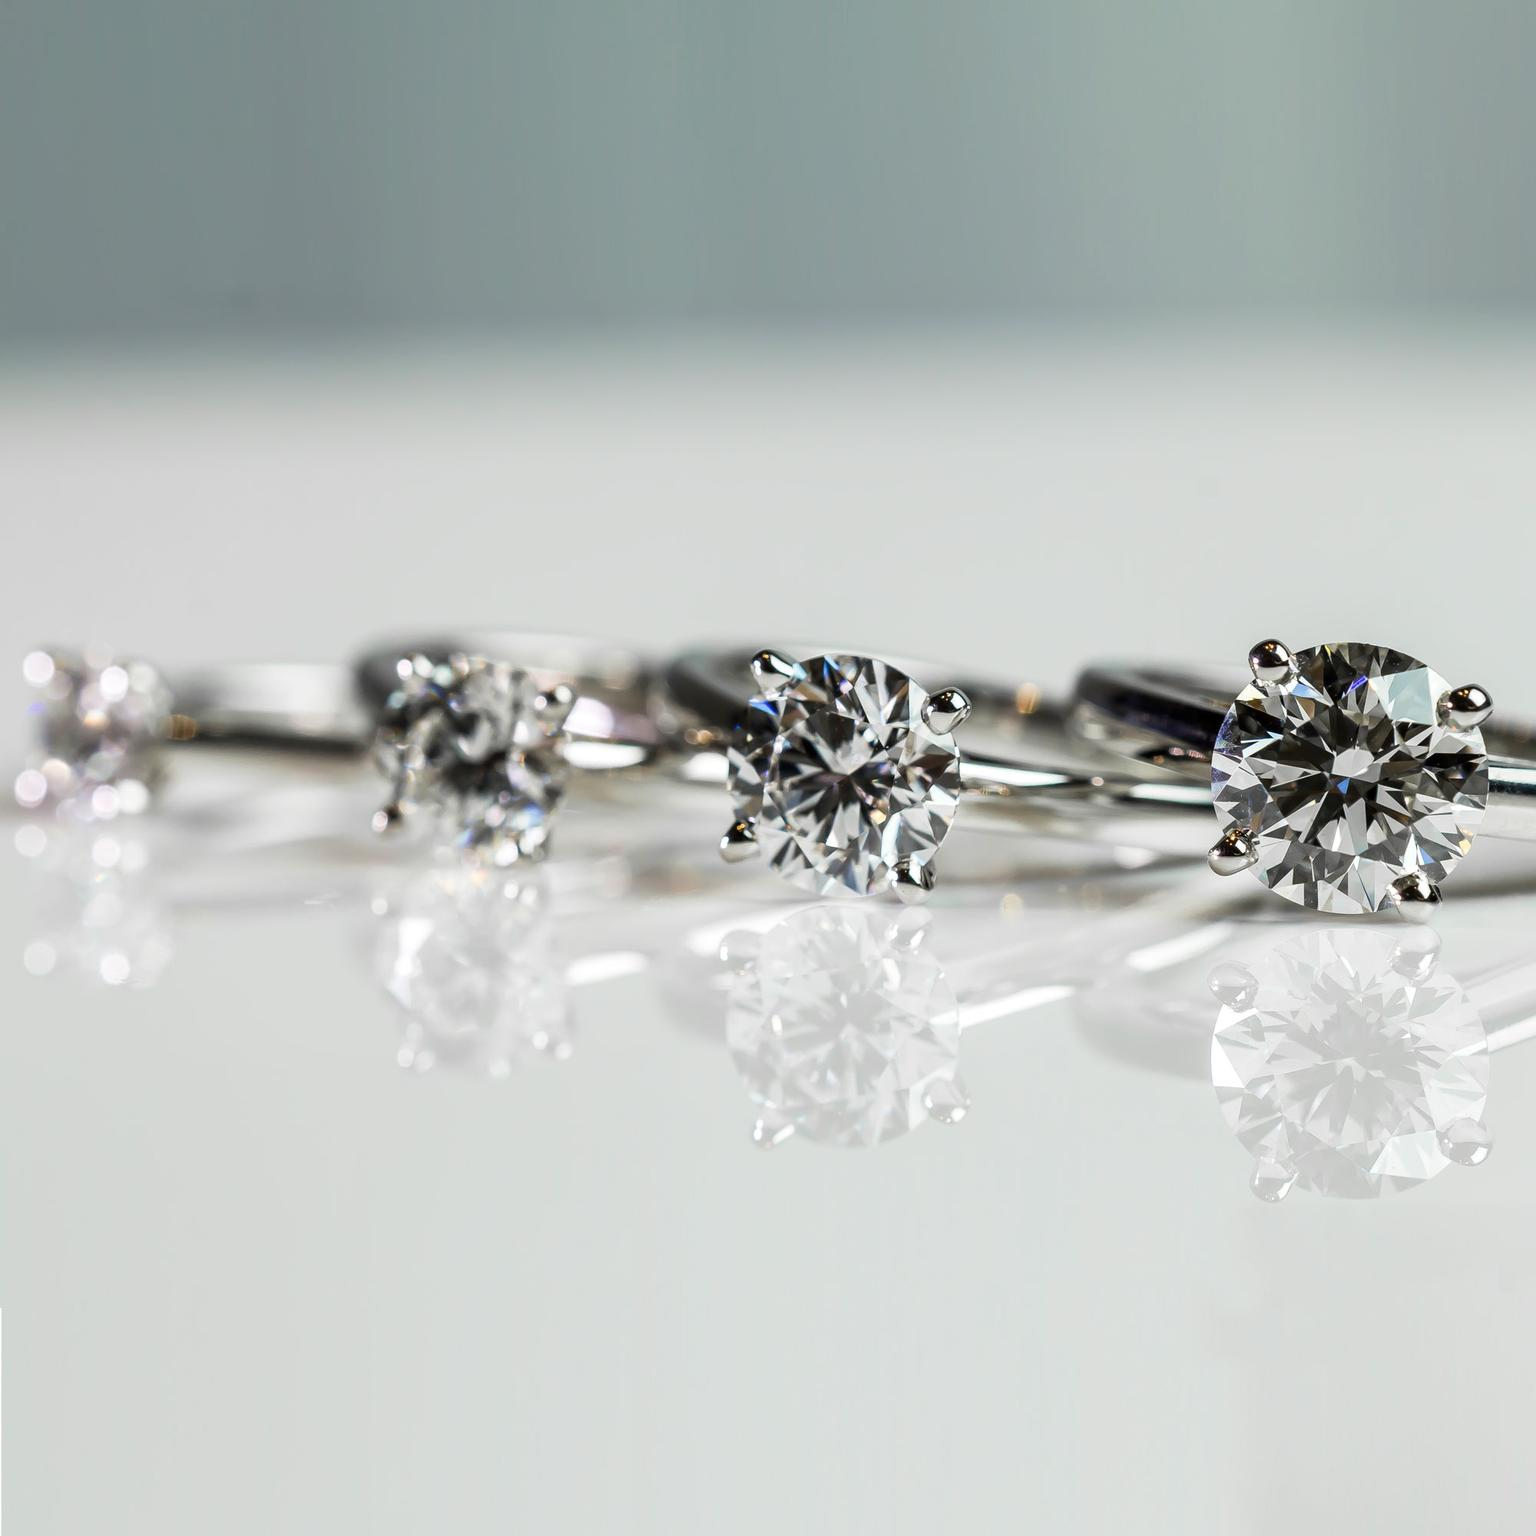 rings beautiful of tacori vintage wedding jewelry budget tififi with co lovely diamond sets zales